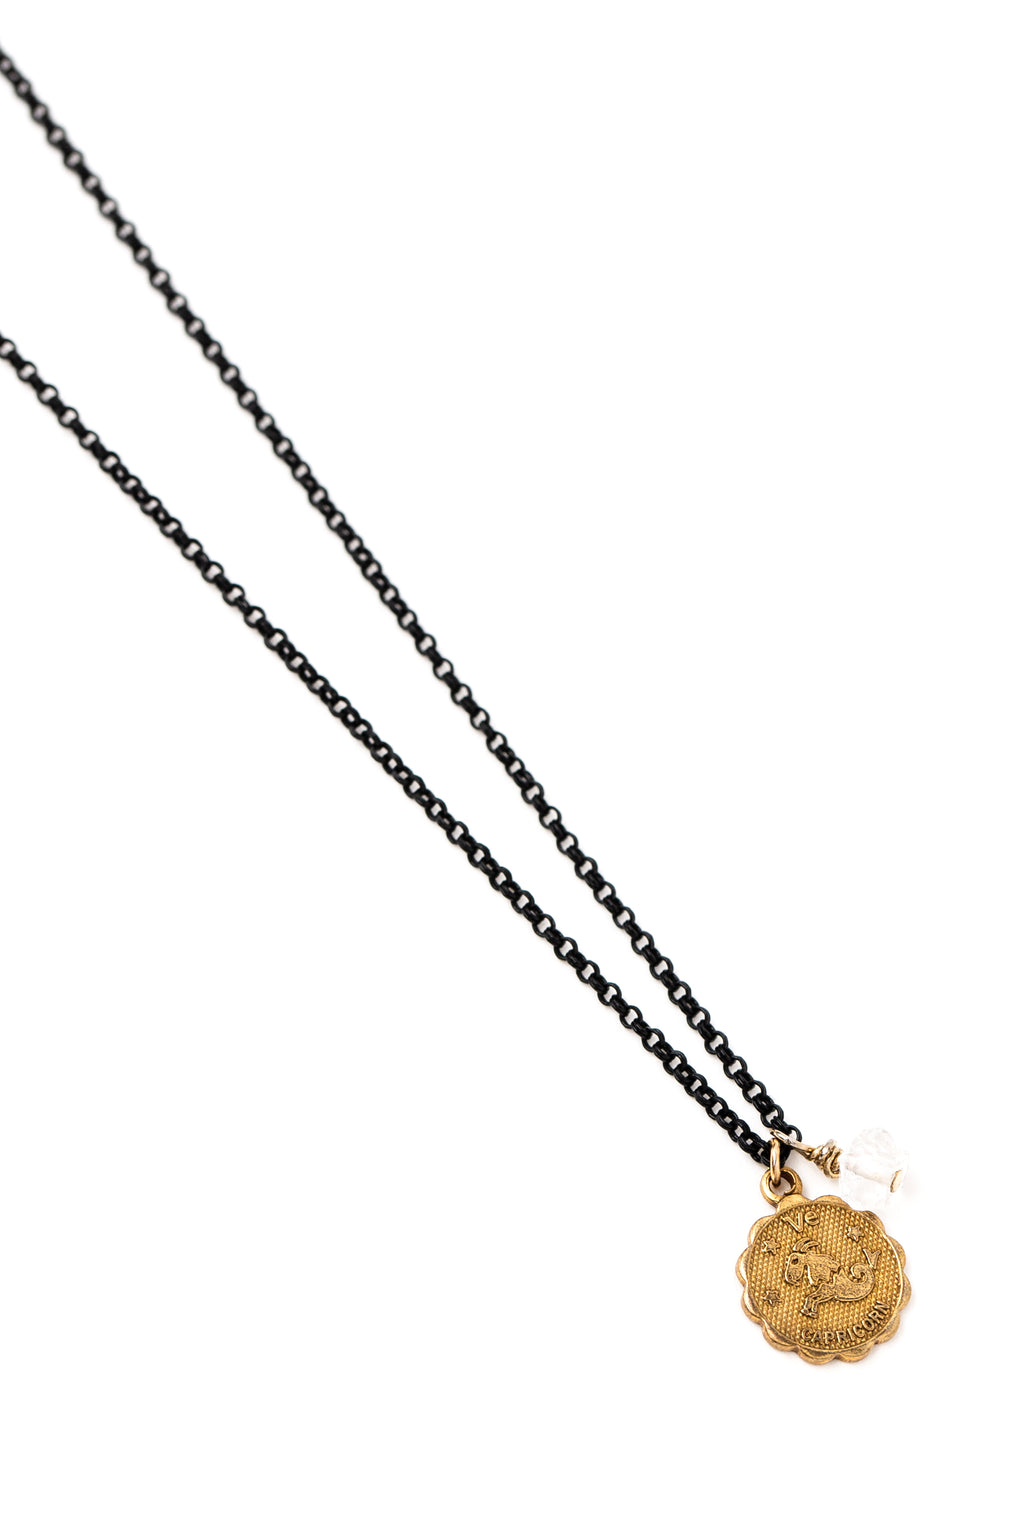 Zodiac Charm Necklace w/ Two-Point Crystal on Black Rolo Chain